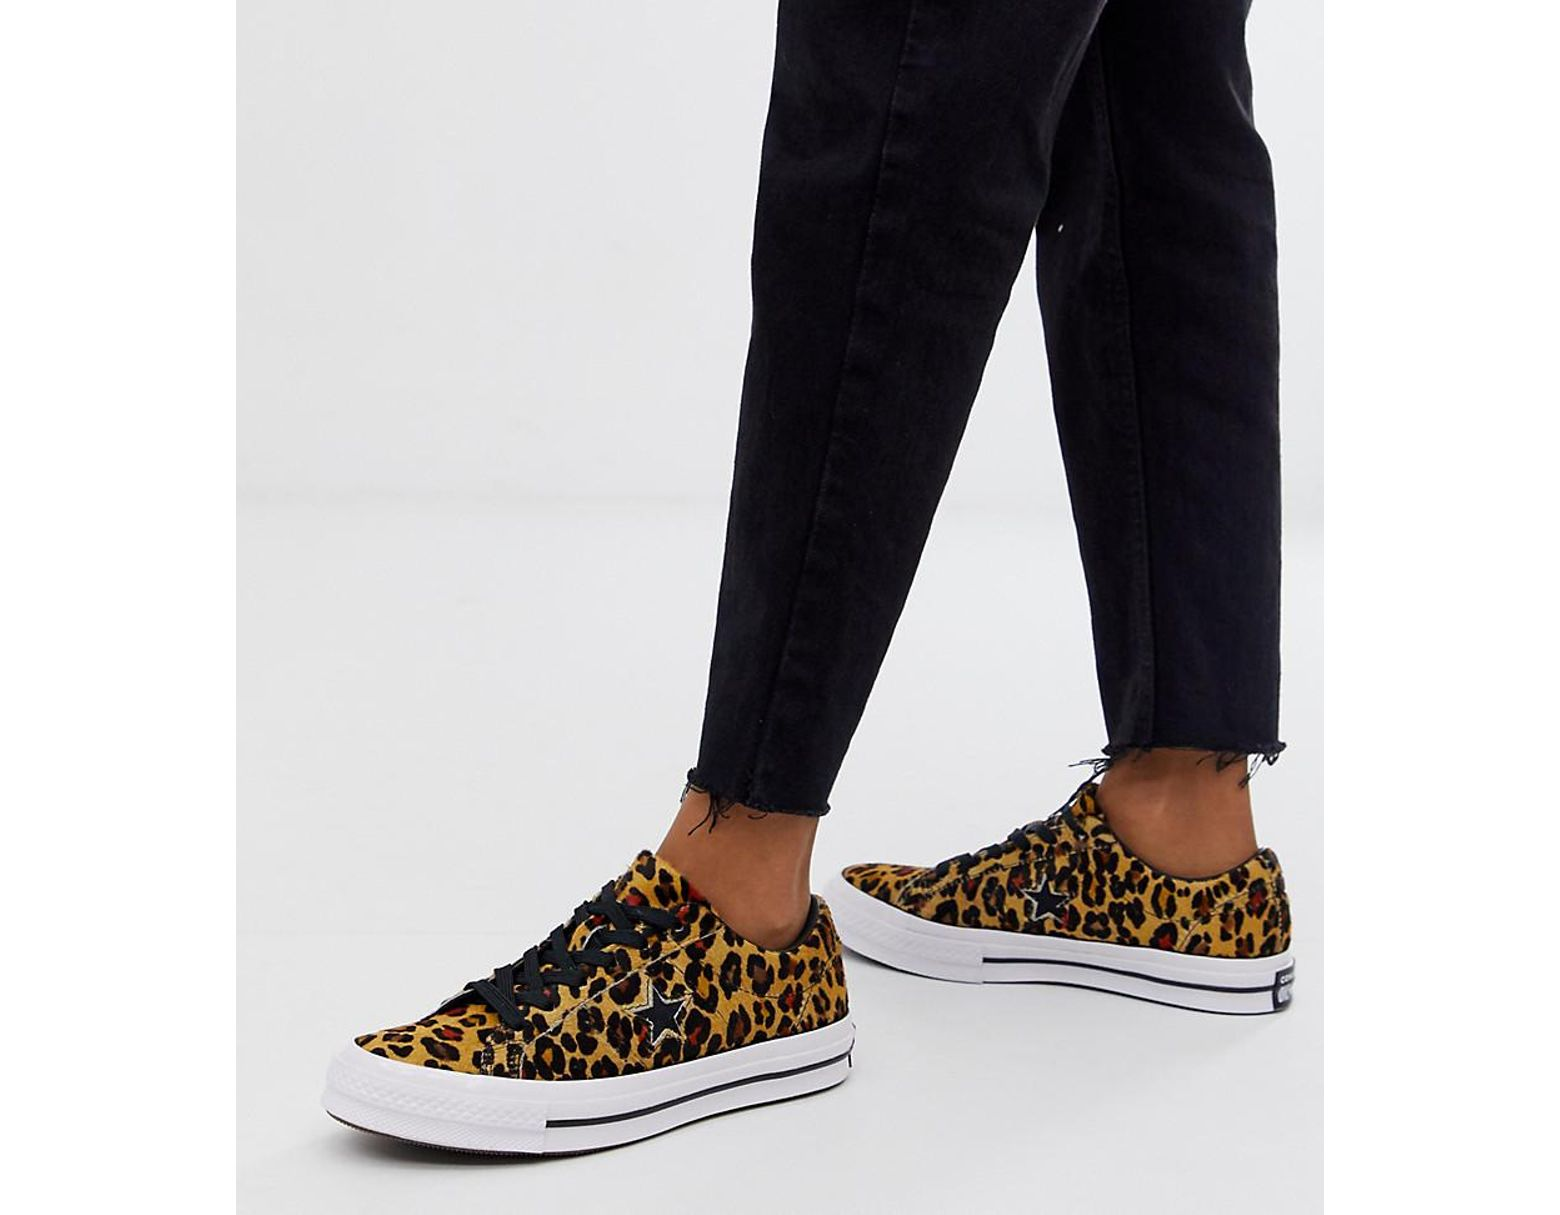 a166d675828 Women's One Star Pony Hair Leopard Print Sneakers